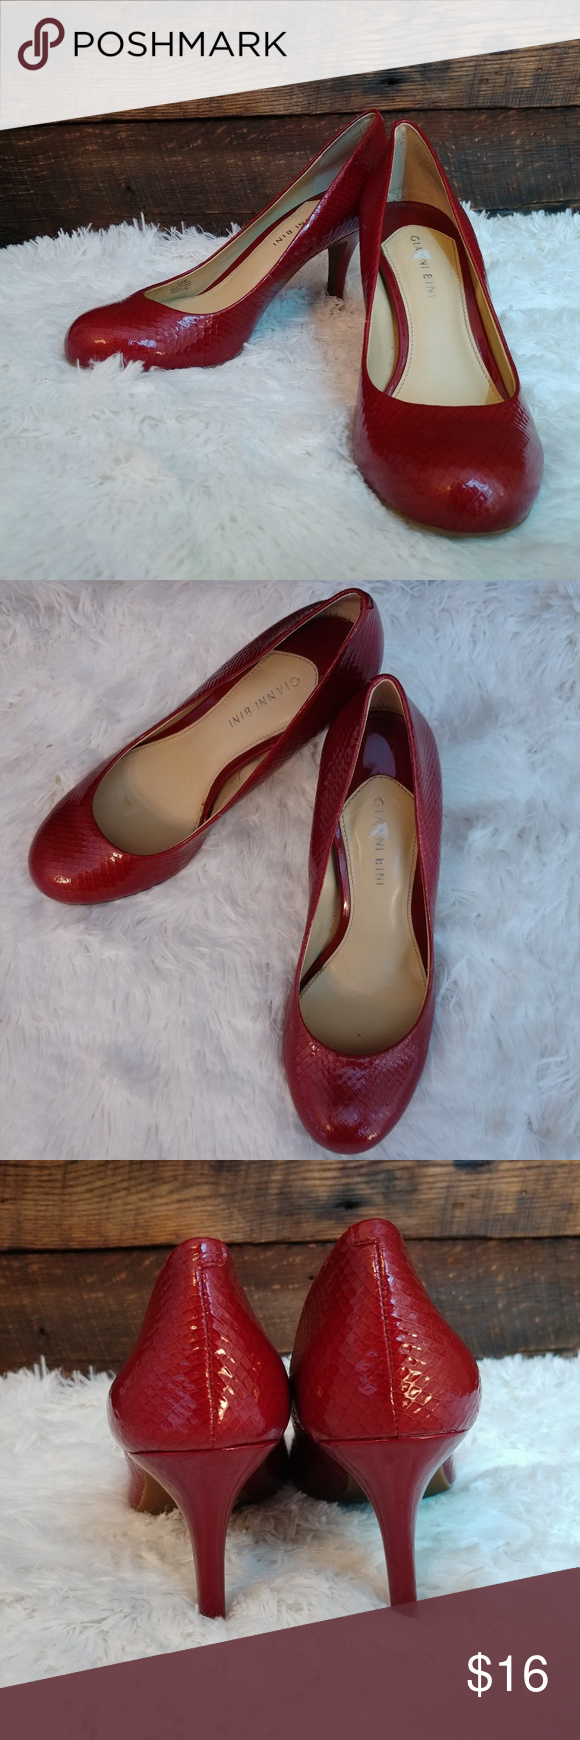 Red Patent Leather heels pumps by